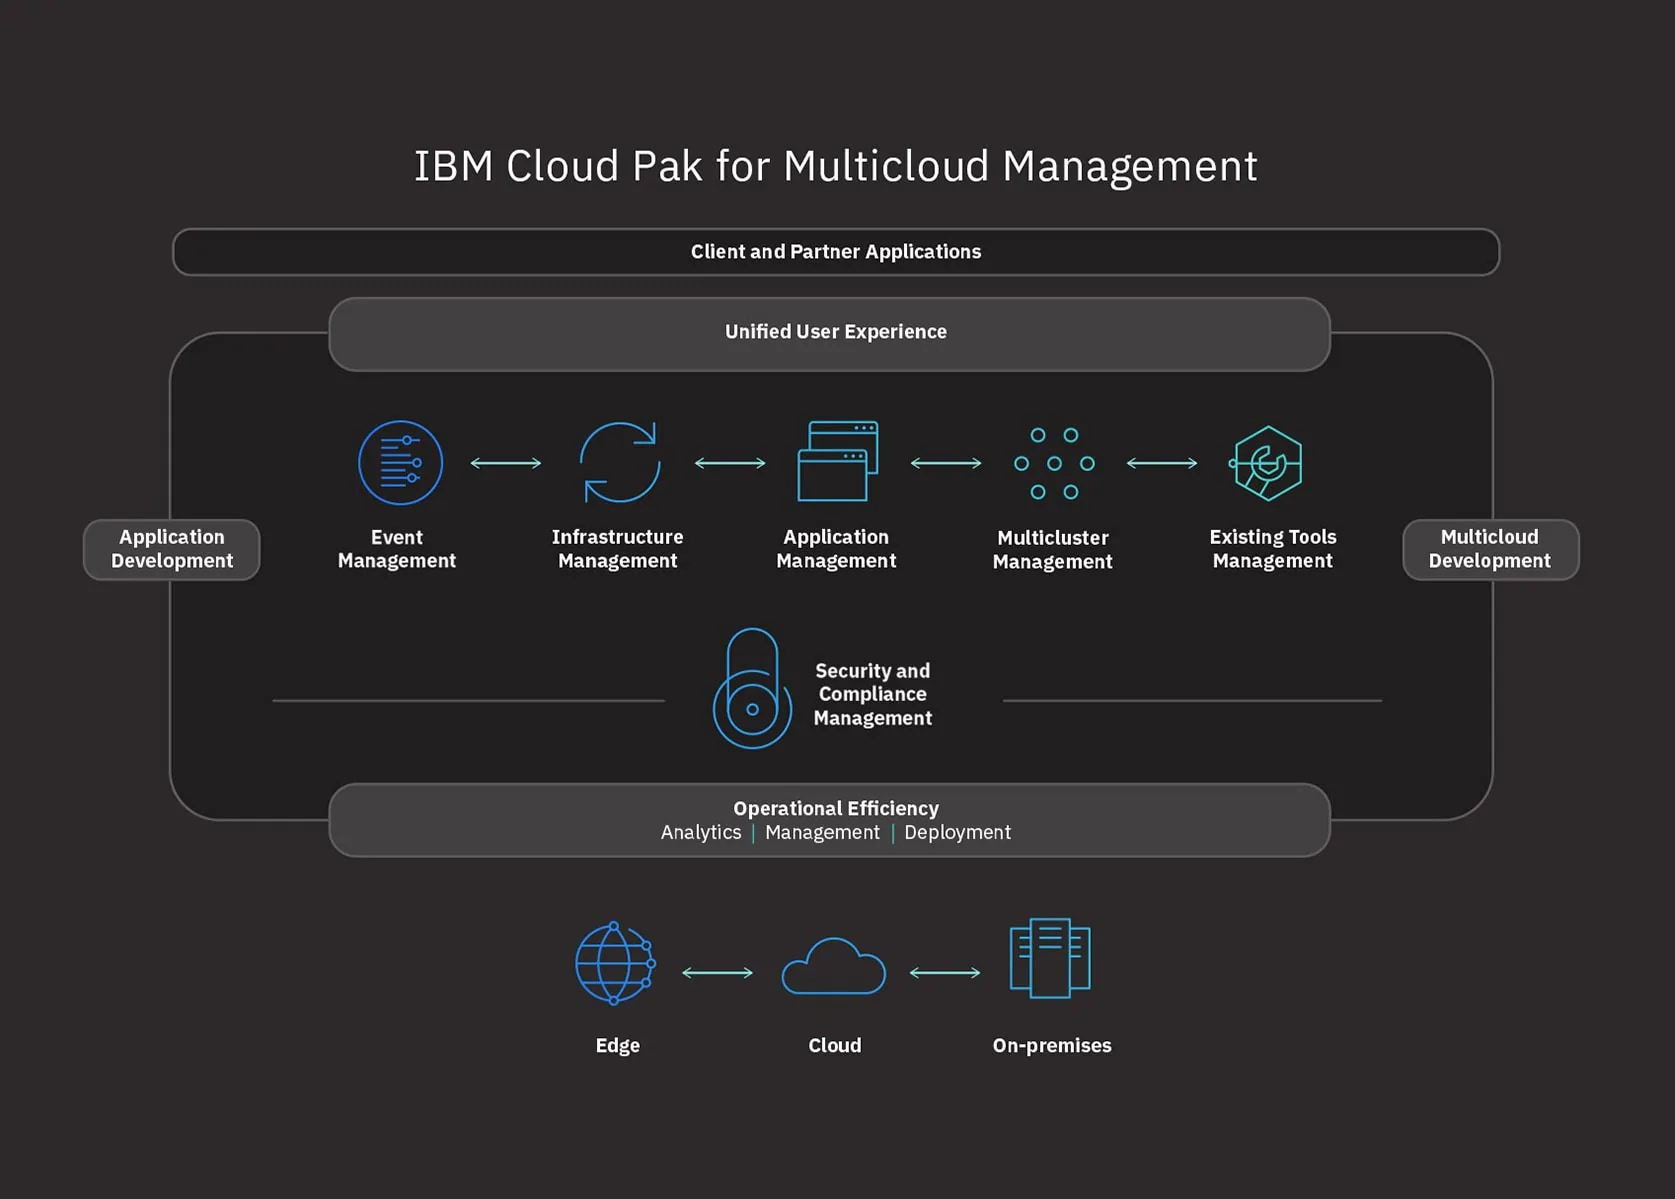 Cloud Pak for Multicloud Management